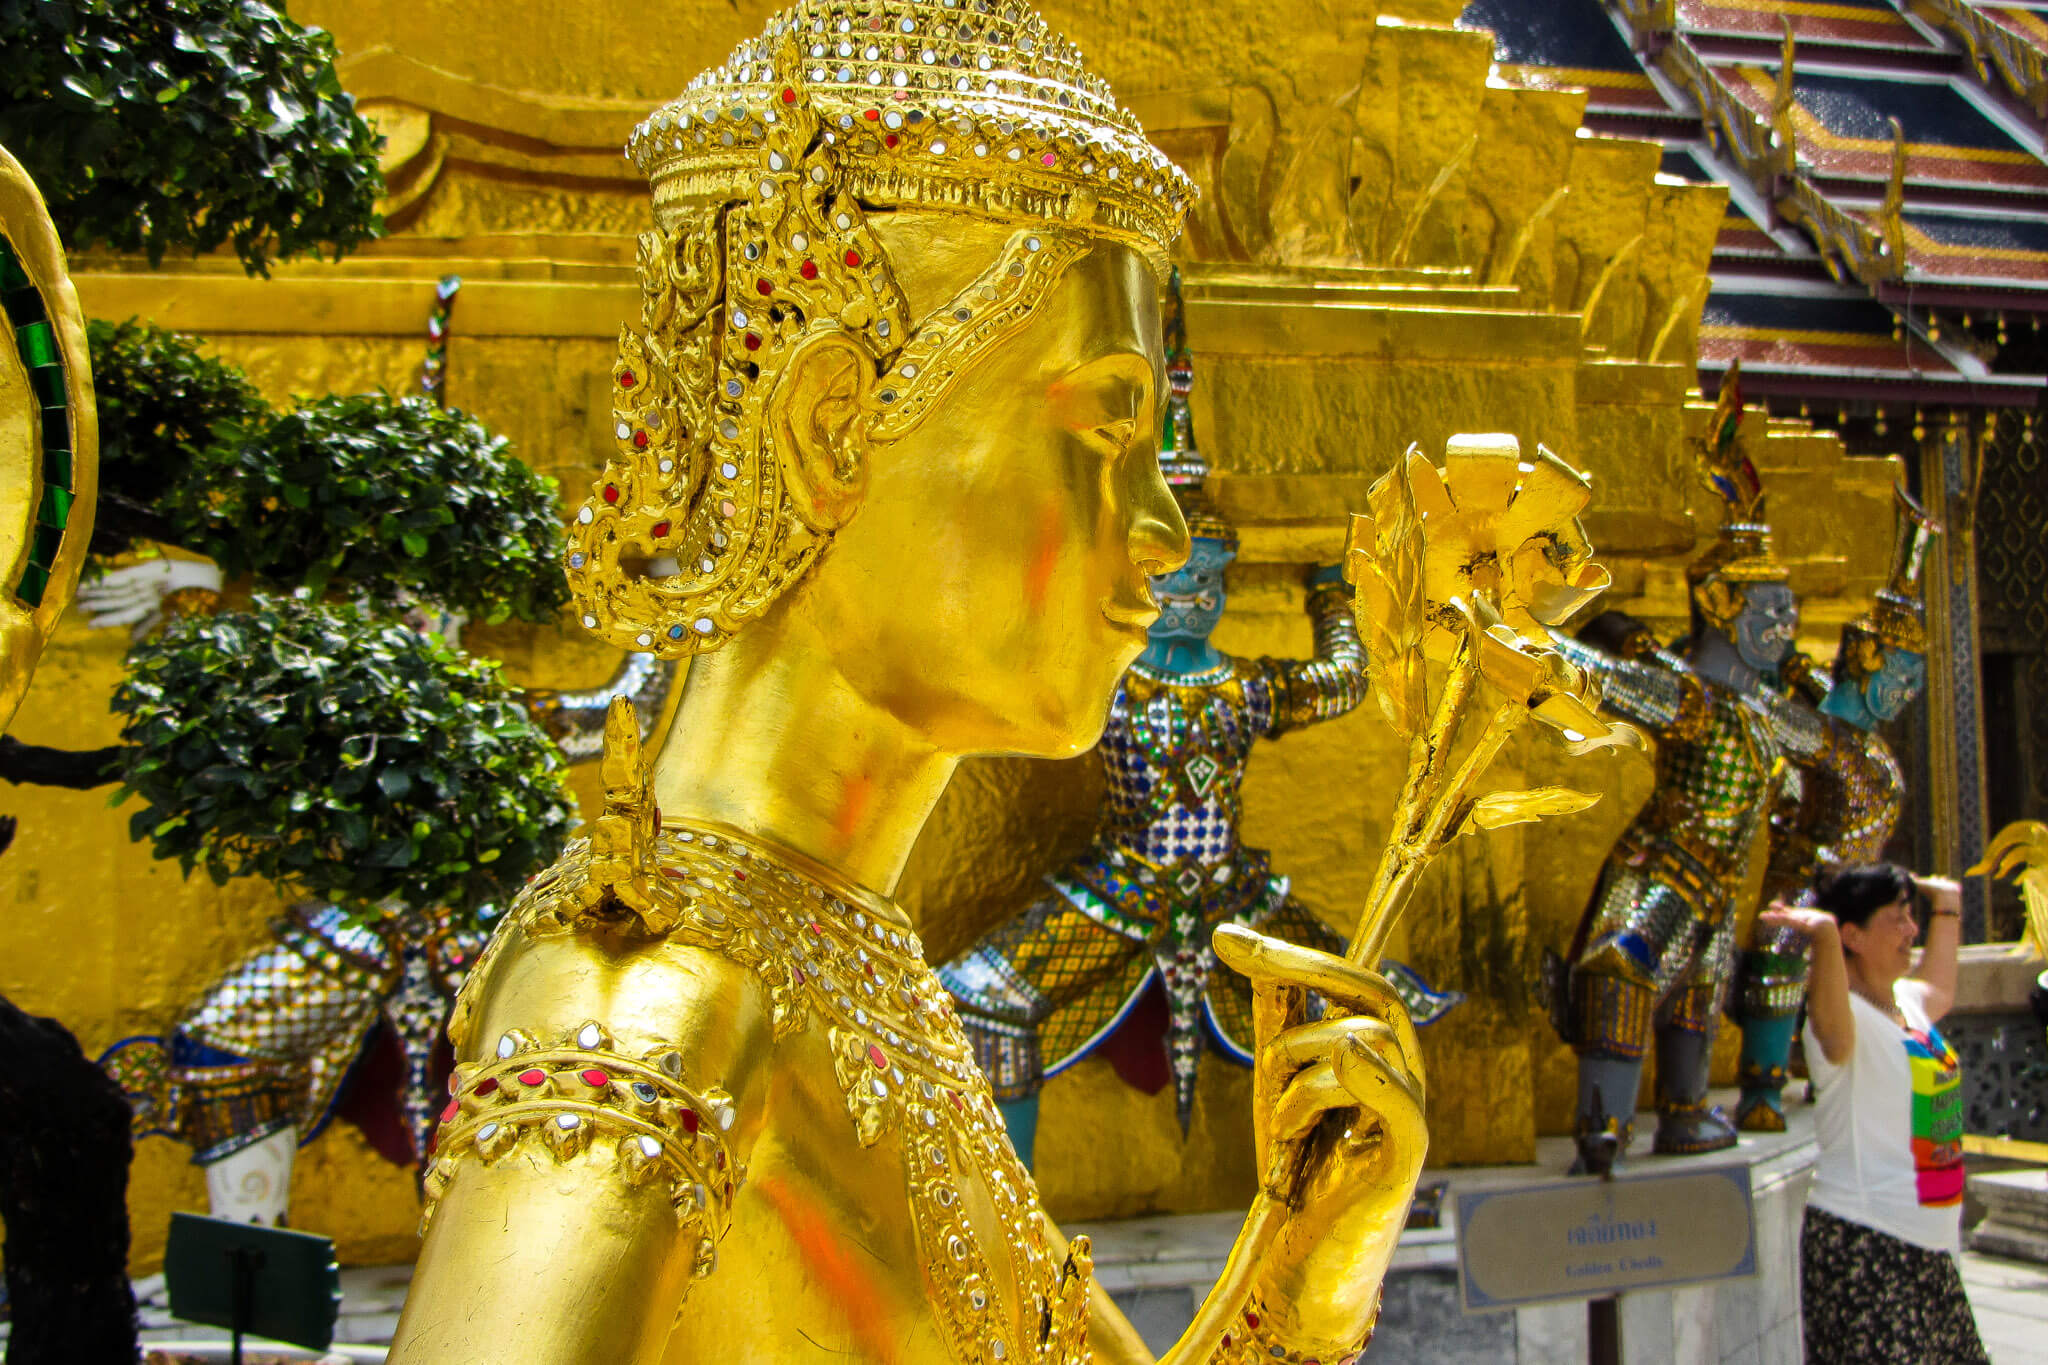 Inside the Royal Palace of Bangkok